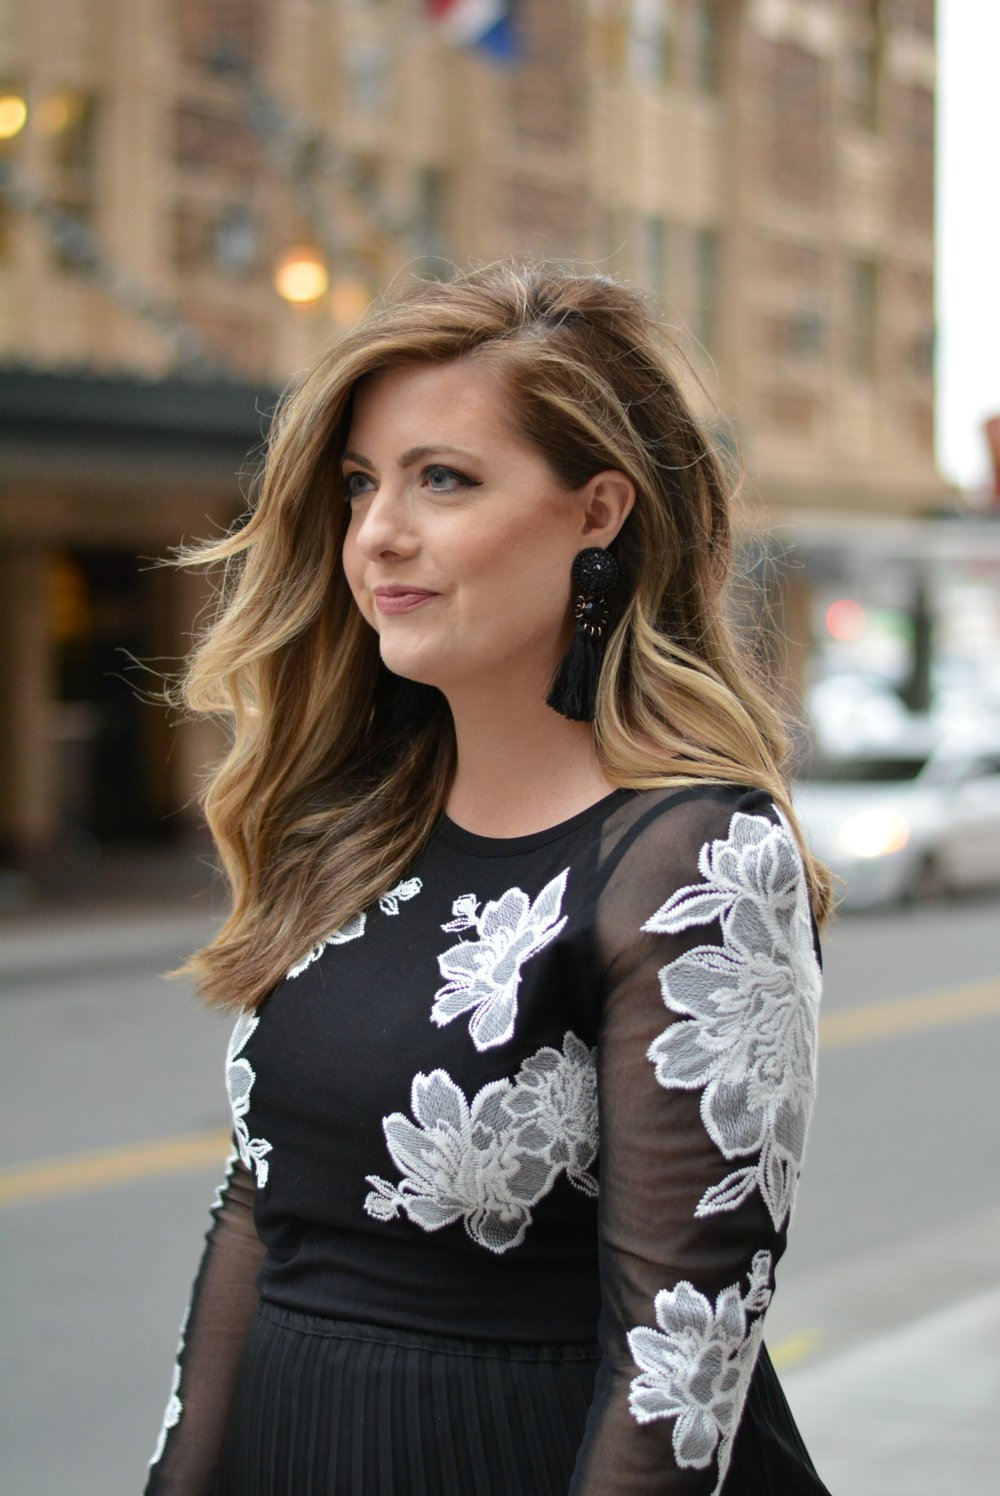 Tassel earrings and Black and white outfit